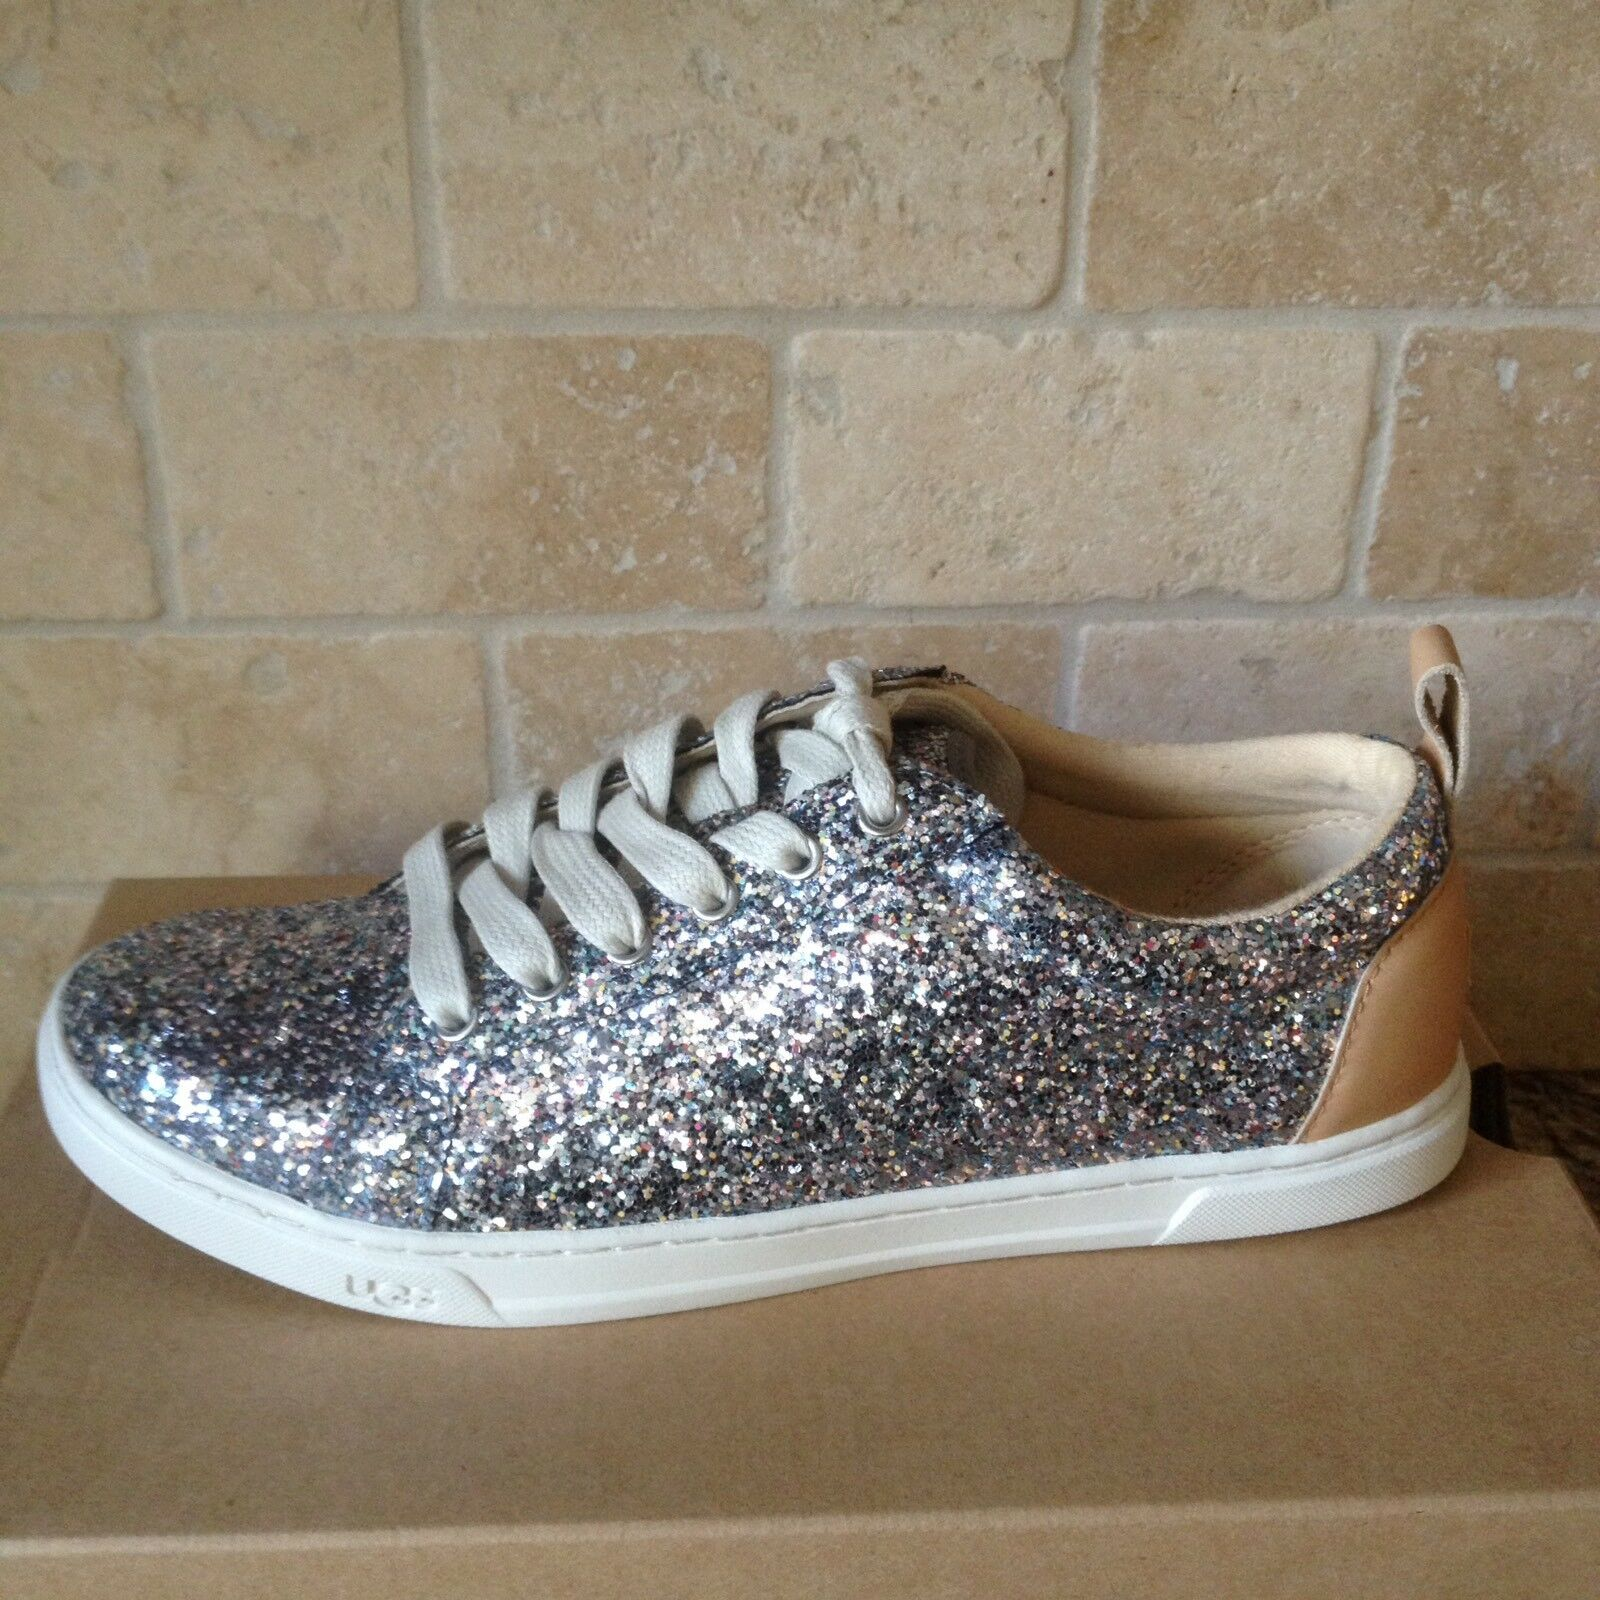 UGG KARINE SNEAKERS CUIR SPARKLY MULTI CHUNKY CHAUSSURES TAILLE US 7 FEMMES